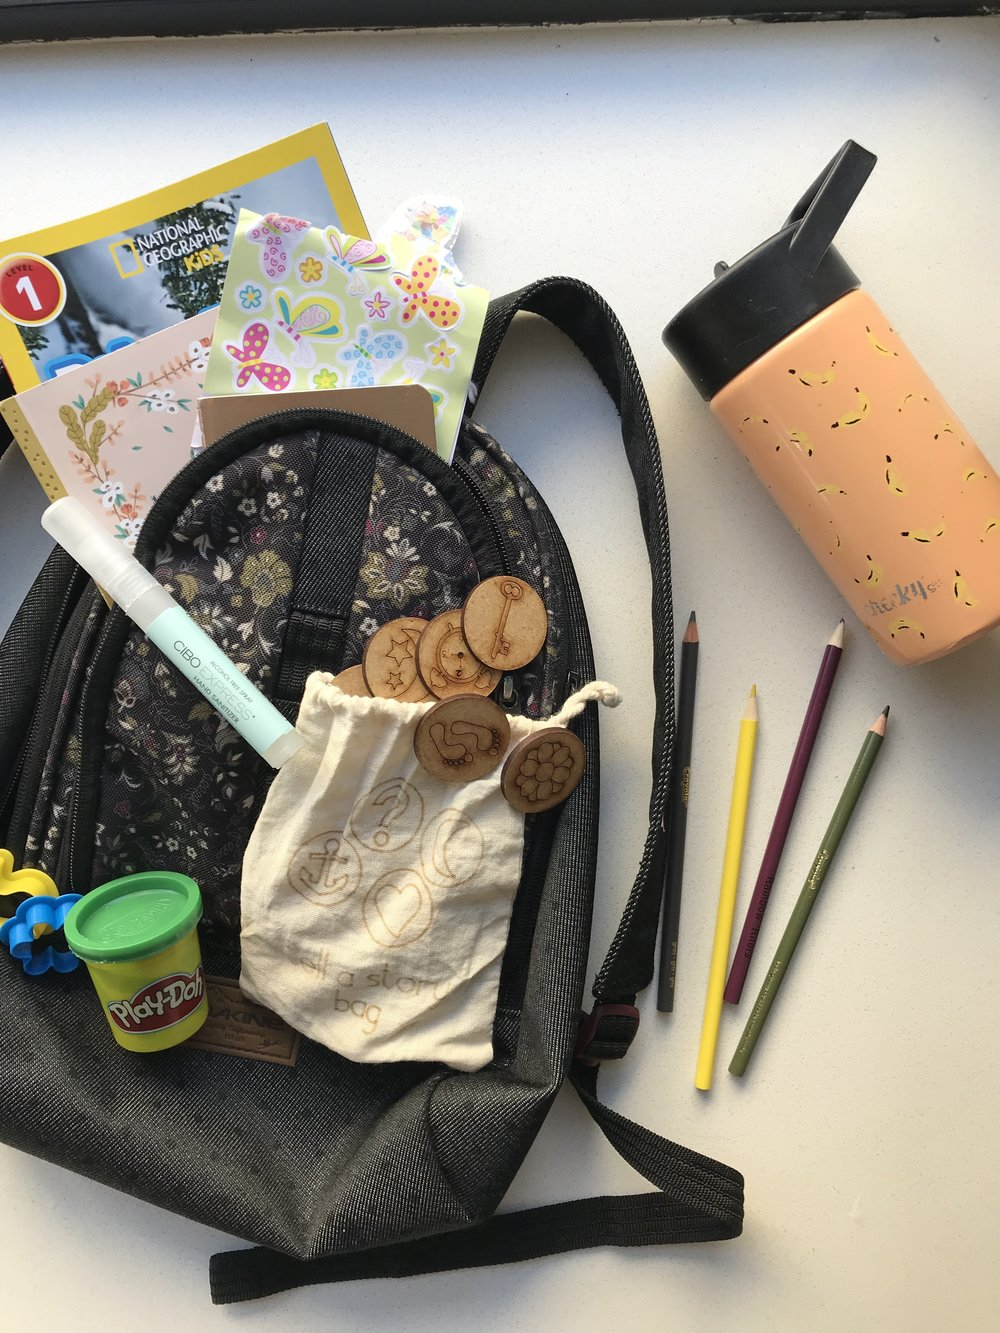 Little notebooks, a coloring book, pencils, reading material, stickers, playdough, spray hand sanitizer (my kids like to have their own hand sanitizer), a game that inspires creativity, water bottle. Not pictured: childs sleep mask which is a game changer. Some airlines actually hand these out.